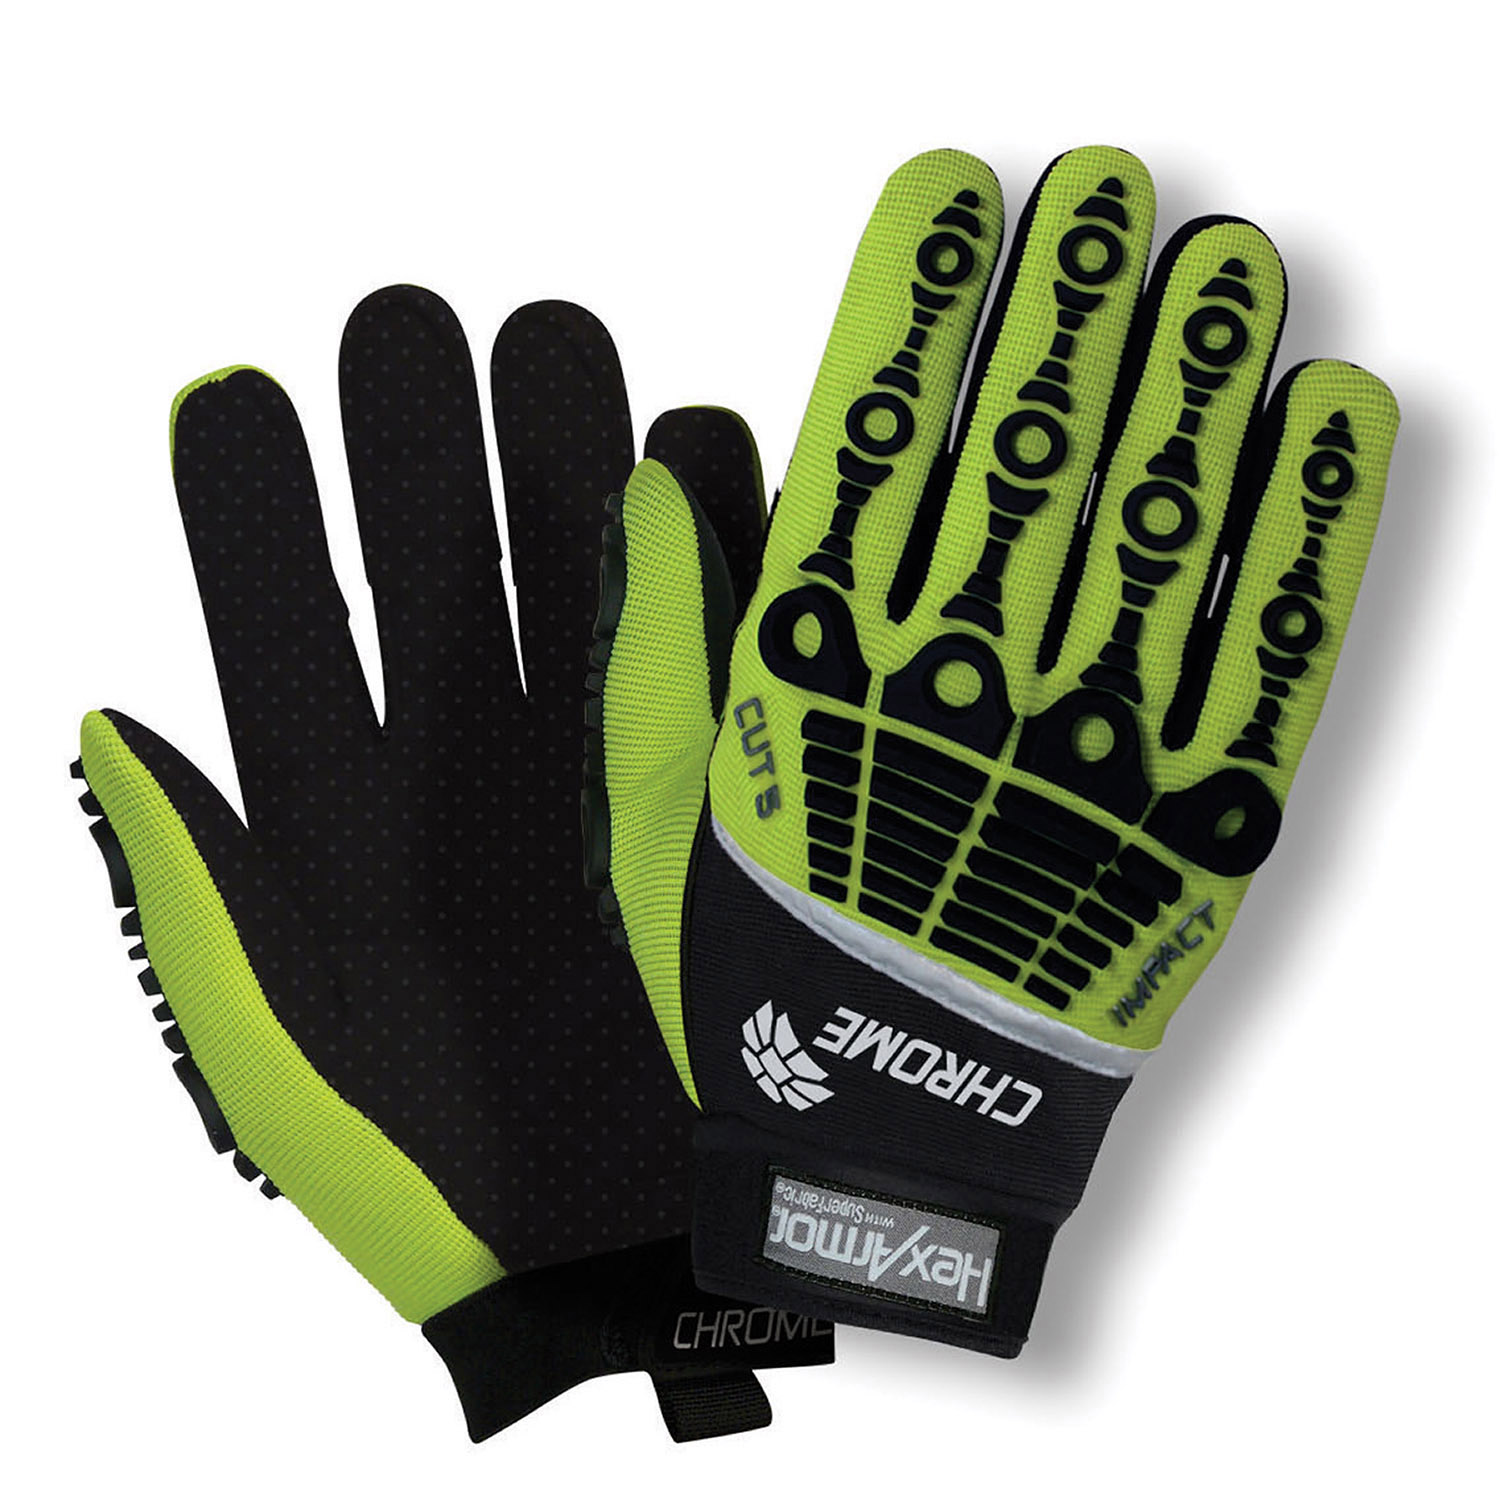 HexArmor Hi Viz Impact Cut Level 5 Glove